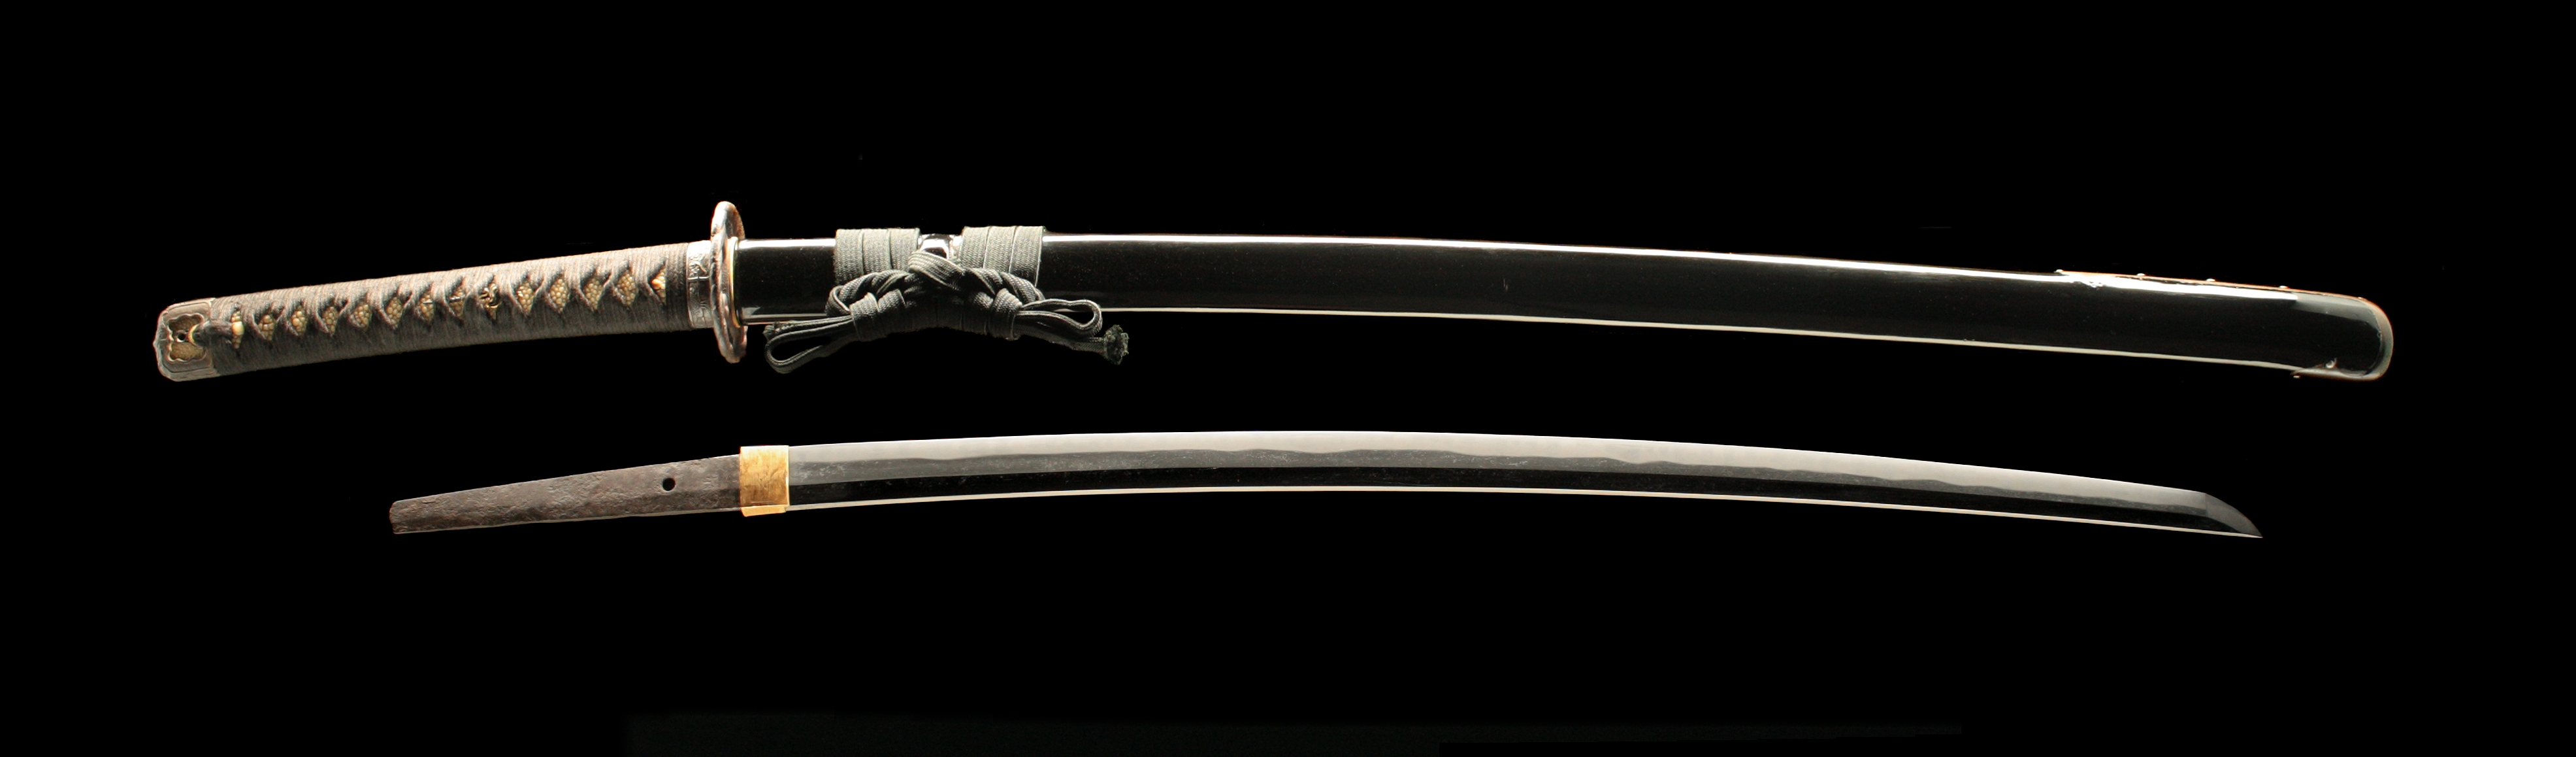 Images of Shinto Katana | 3943x1158